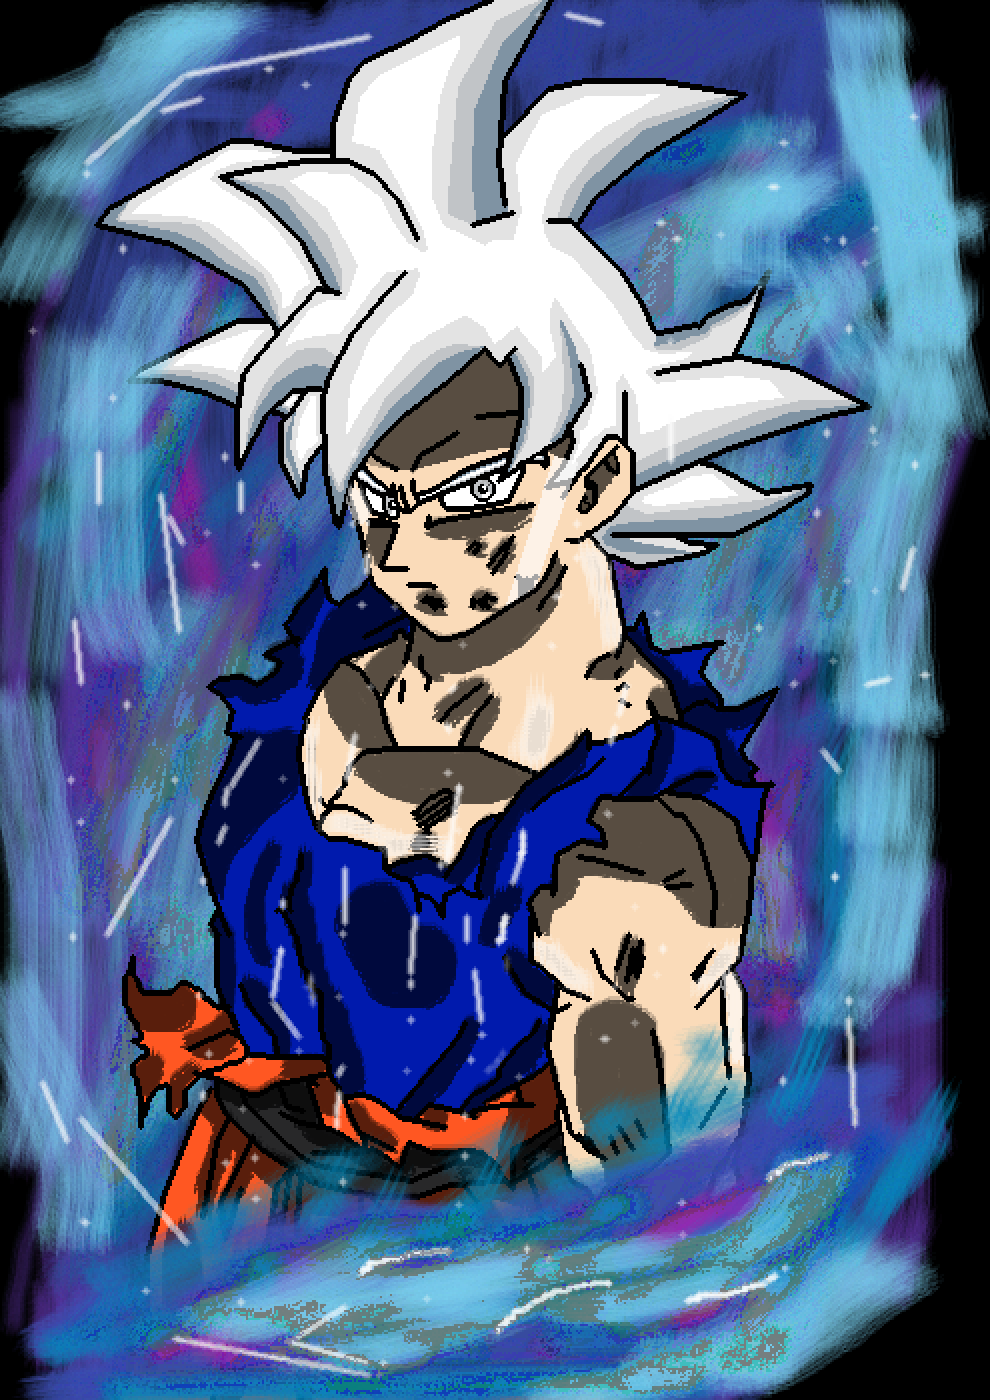 Mastered Ultra Instinct Goku (Migatte No Goku'i) by Ripper